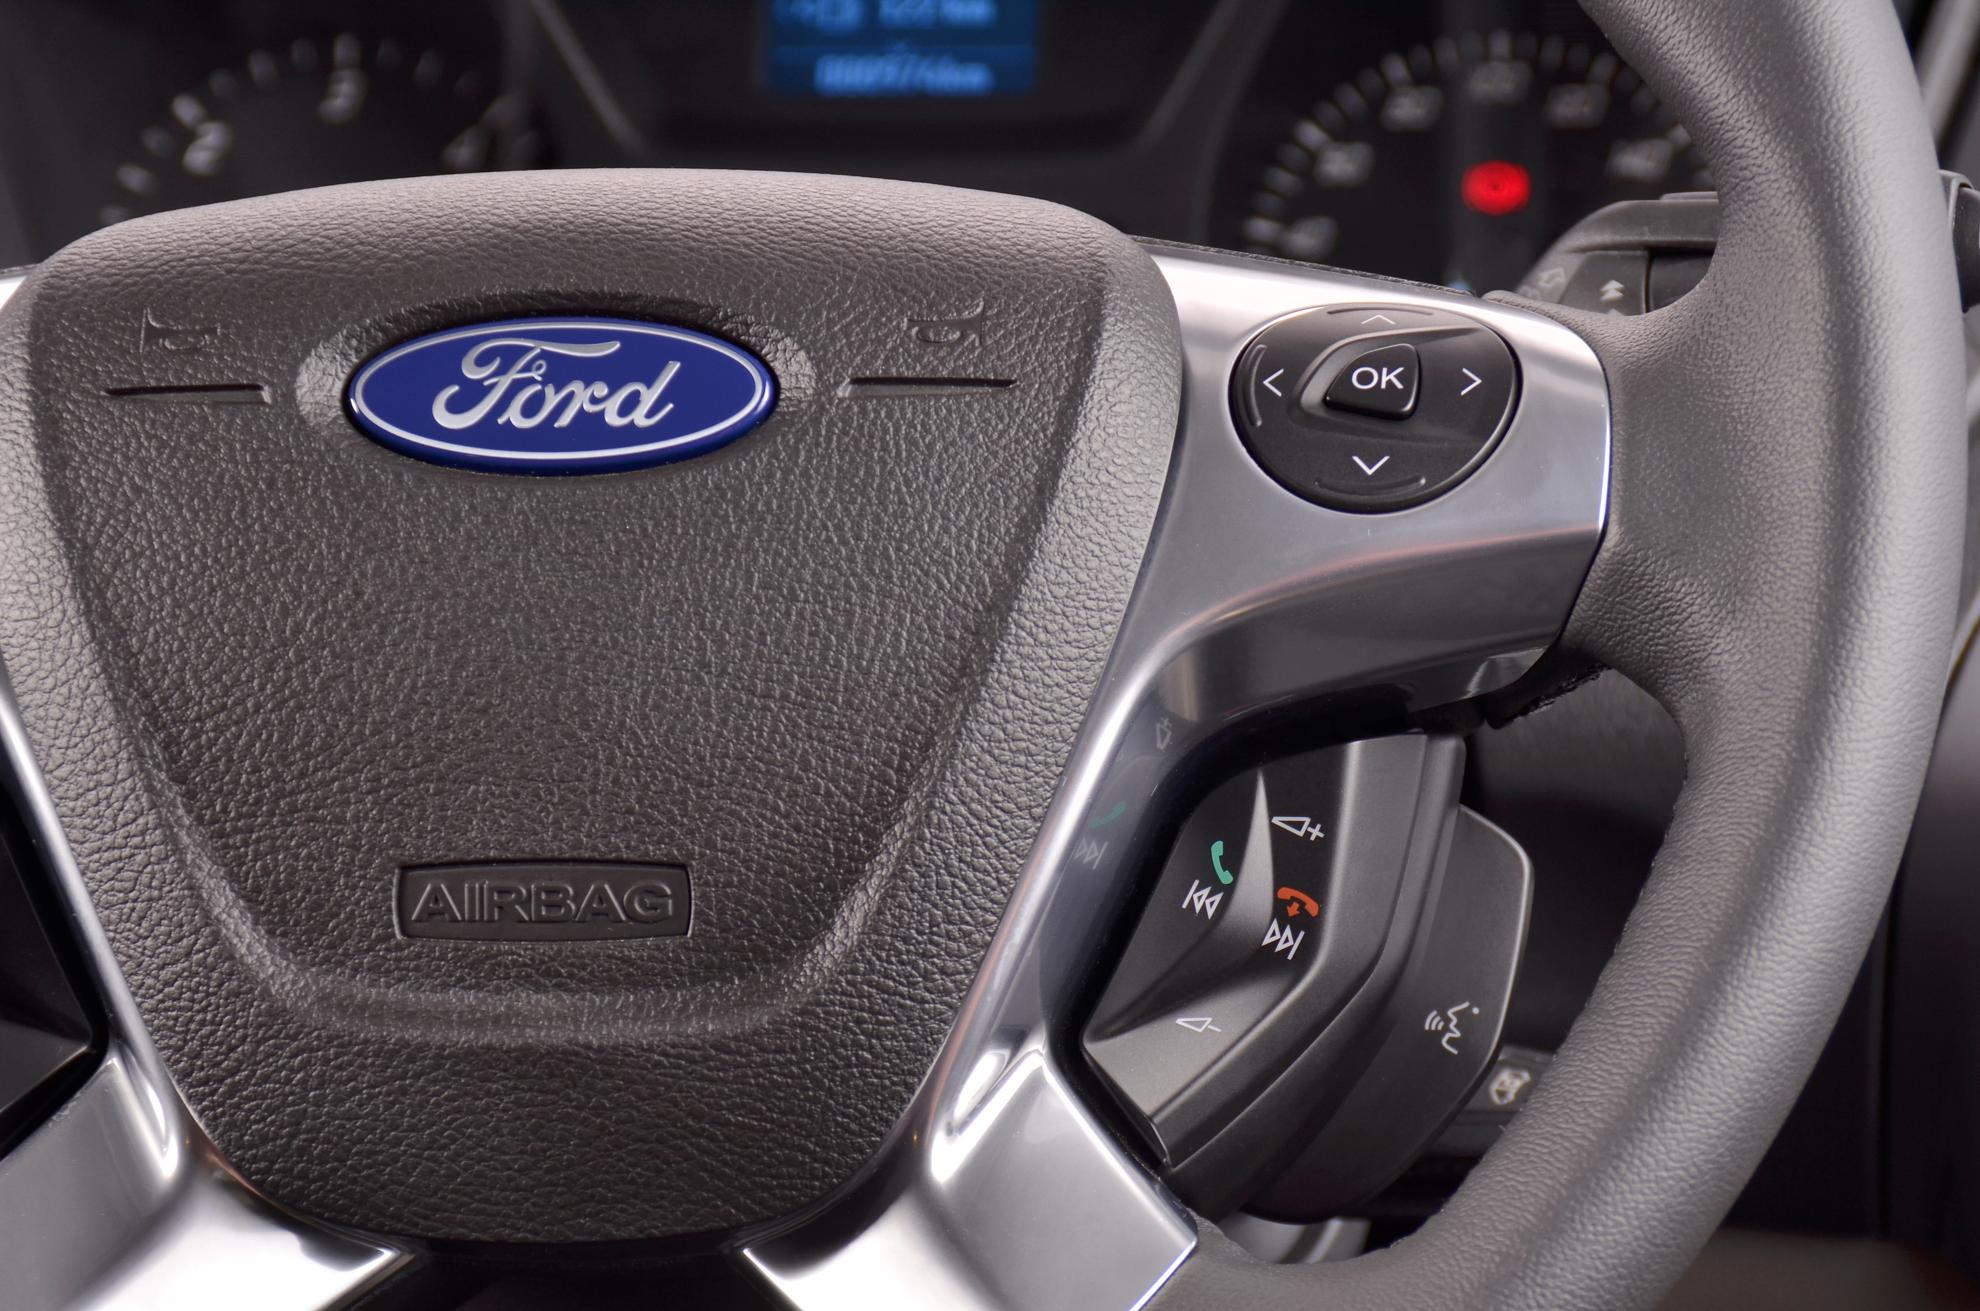 Ford Tourneo 2013 Steering